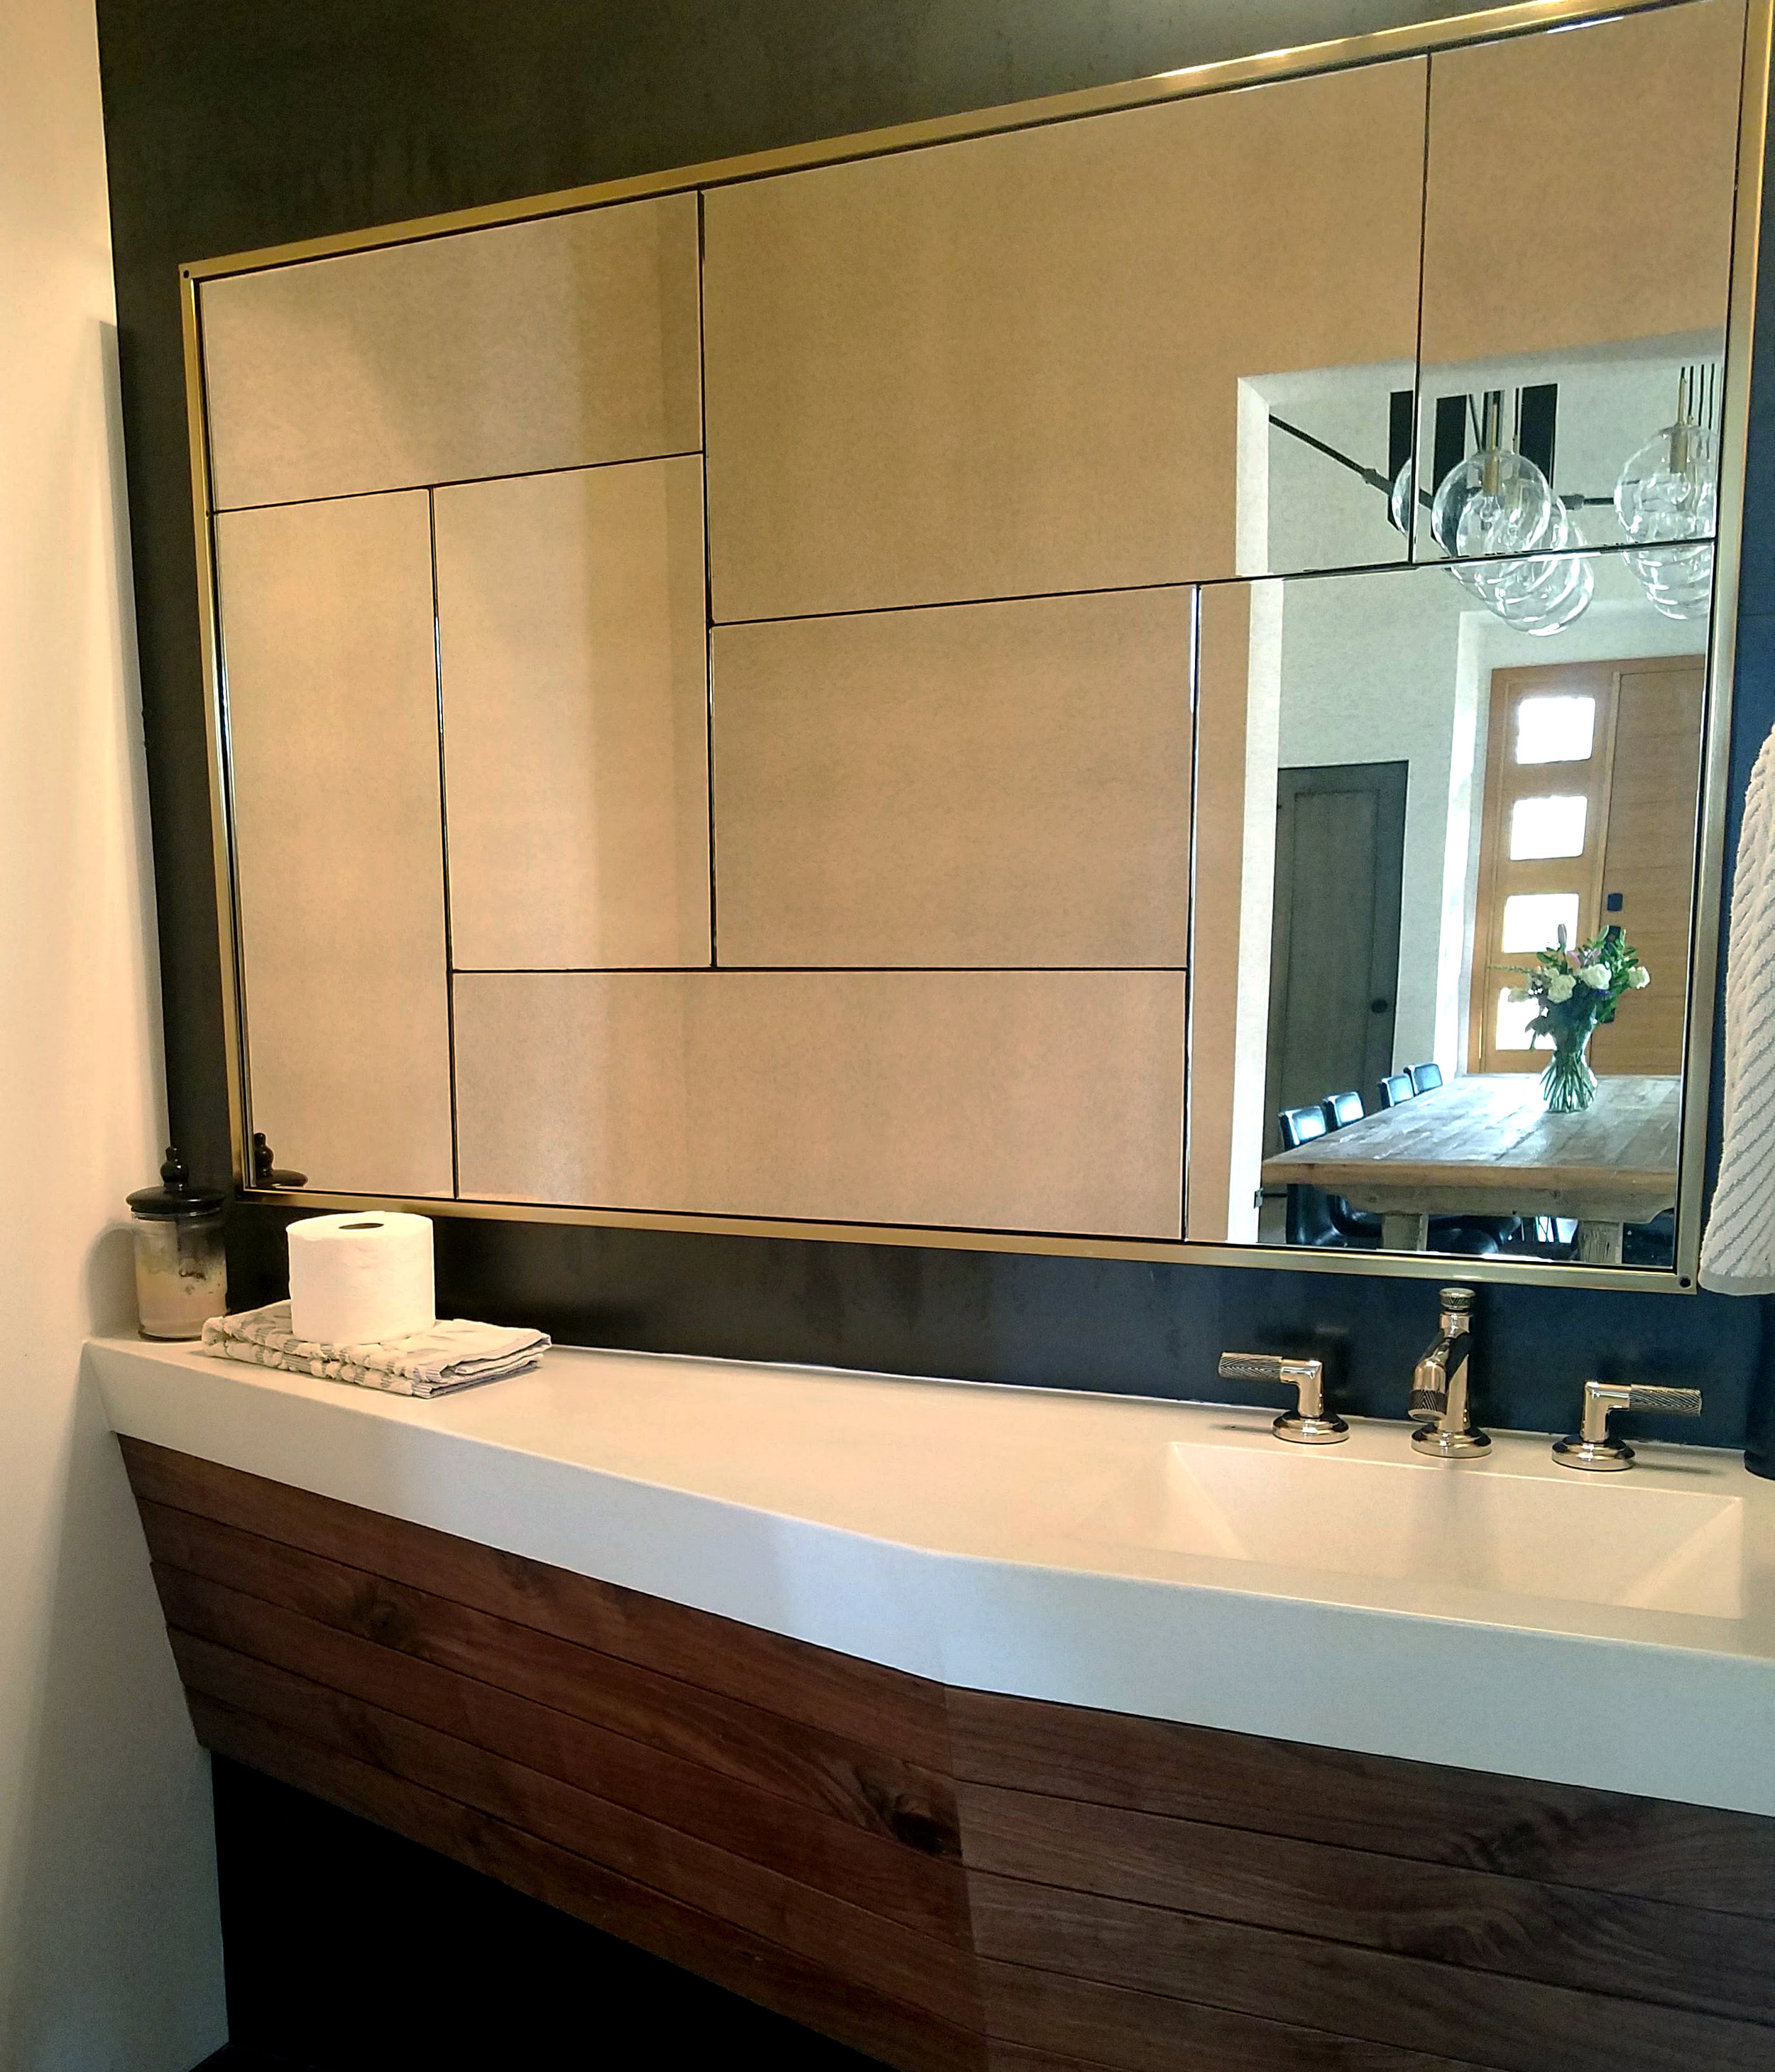 Floating Concrete Vanity Sink with Rustic Walnut Front.jpg